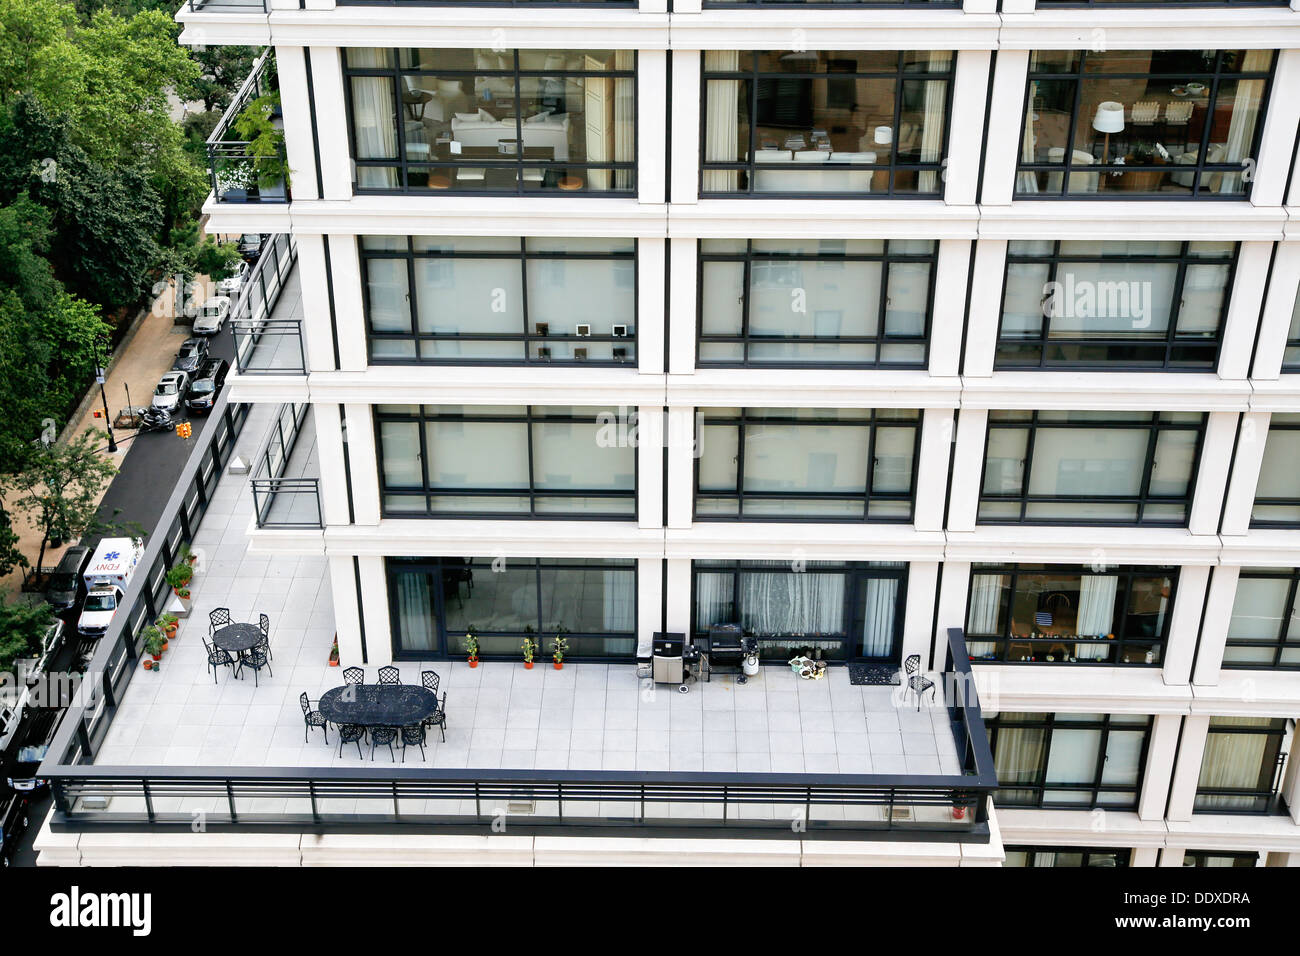 Looking Down at a New York City Condo Apartment Building Set-Back Terrace, New York City in the Background - Stock Image